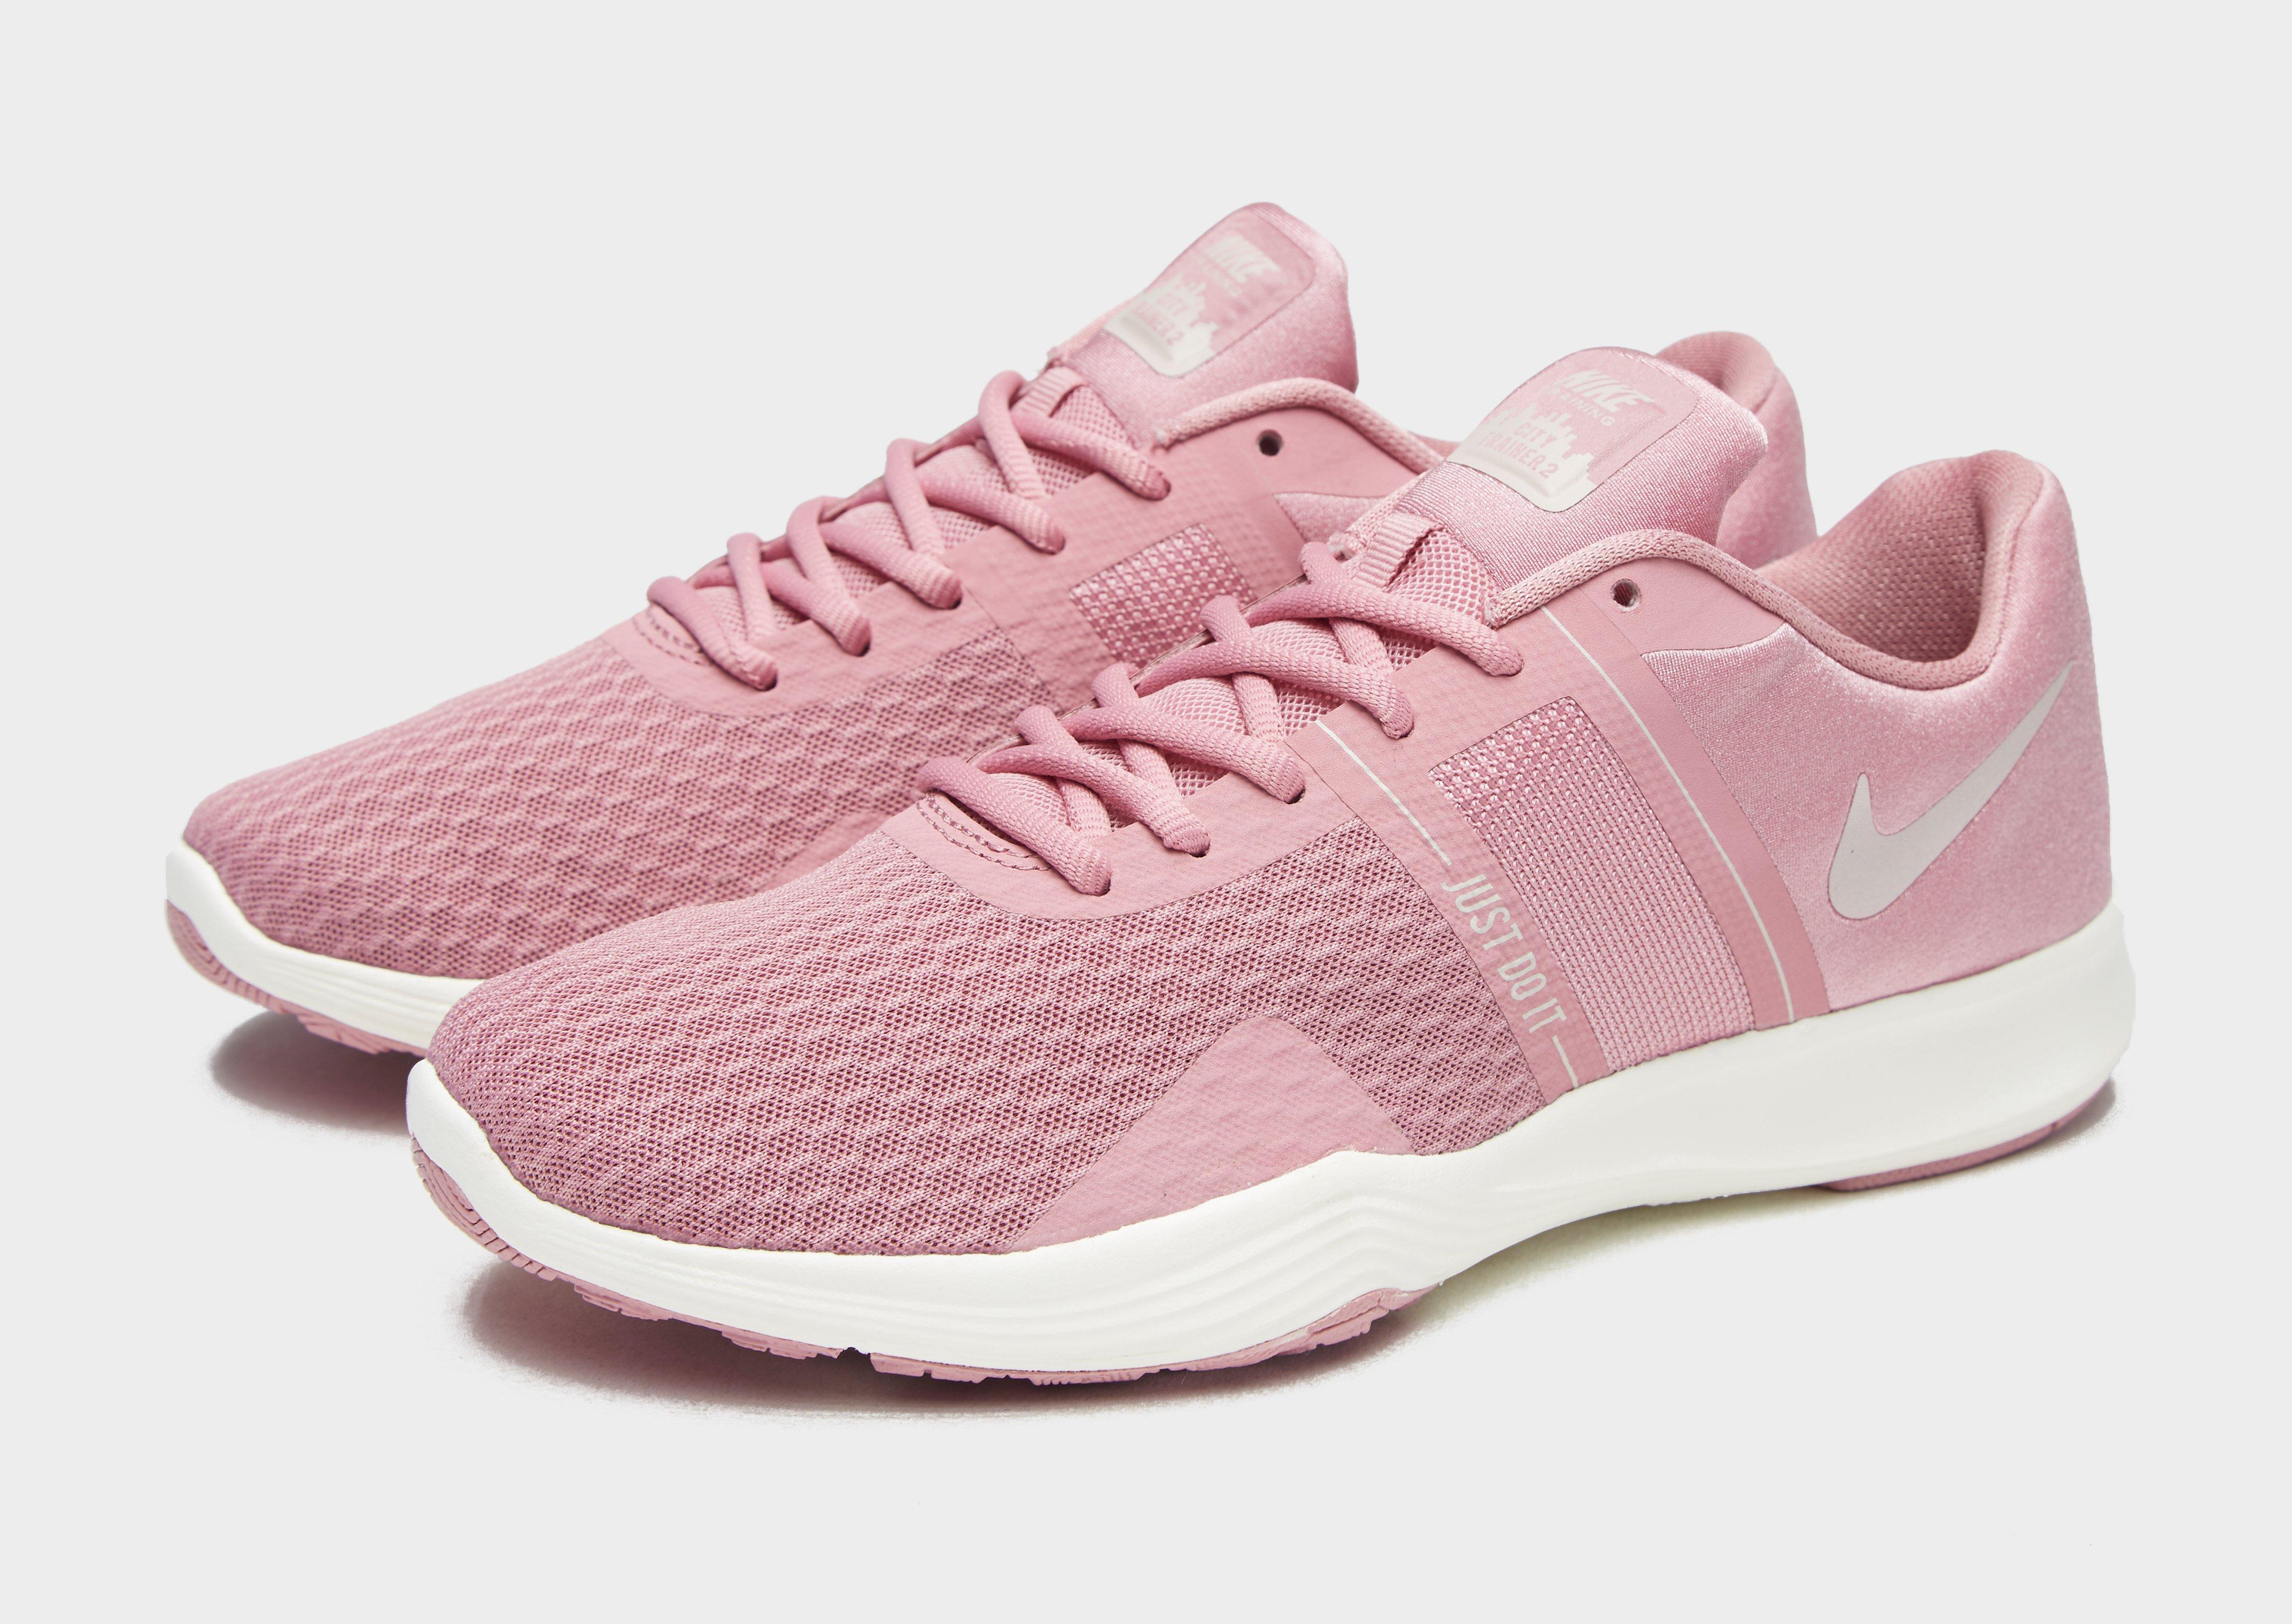 quality design 58fd9 8e45b Nike City Trainer 2 in Pink - Lyst